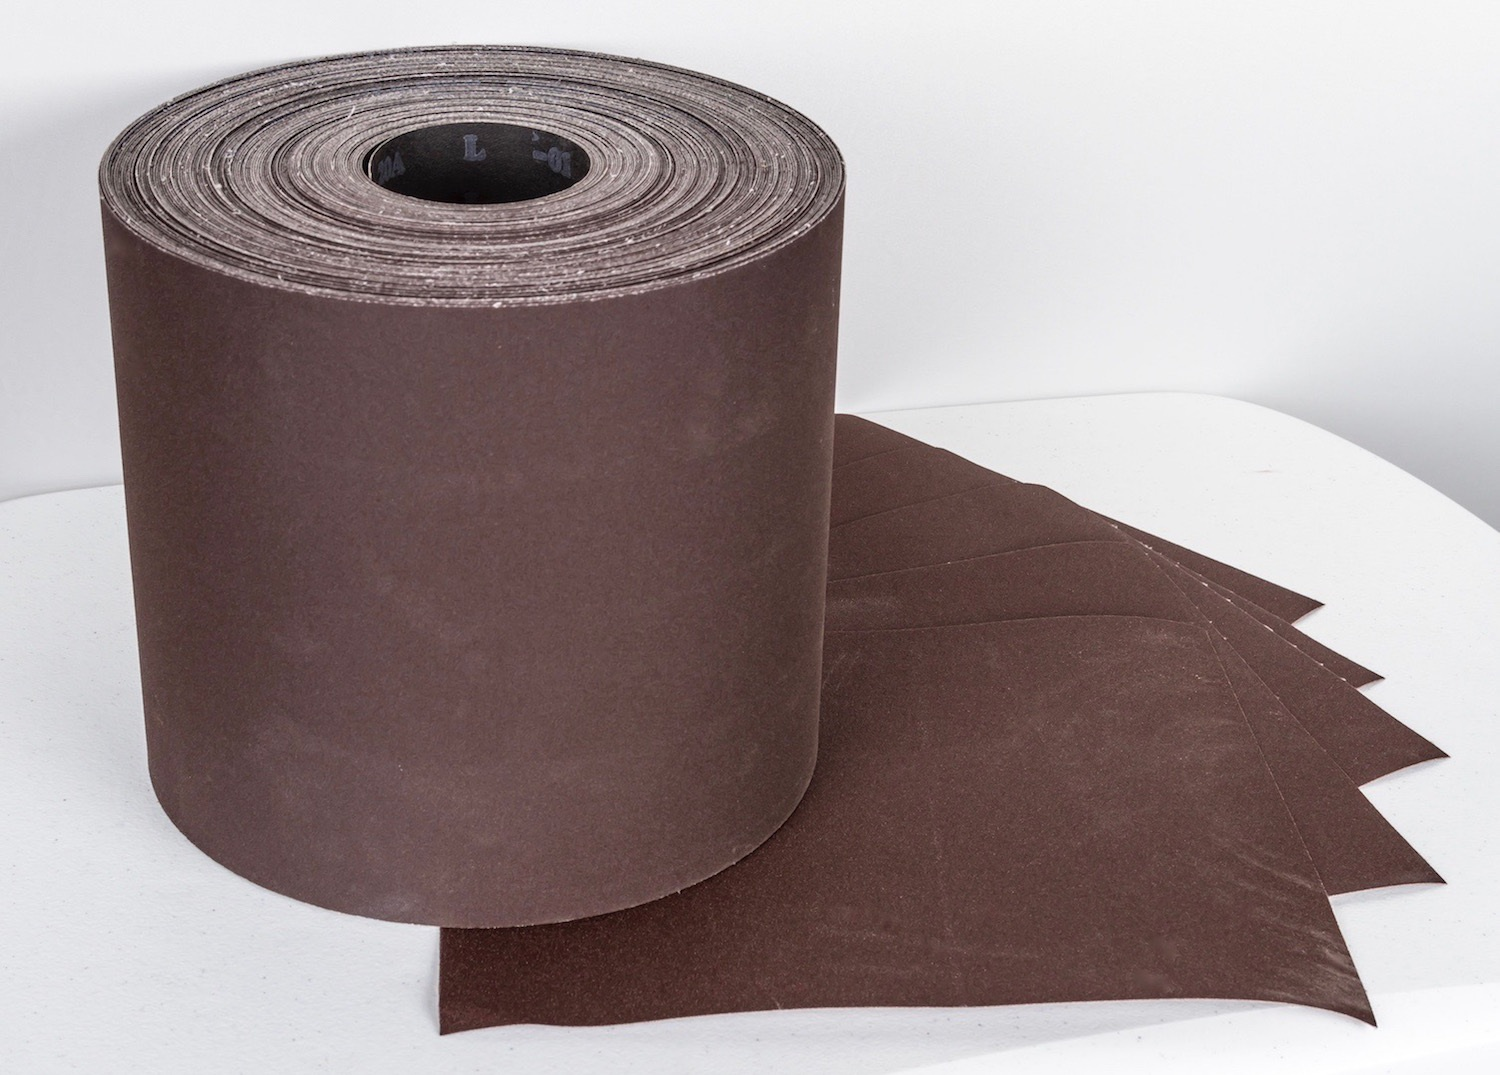 Paper+Roll+and+Sheets.jpg